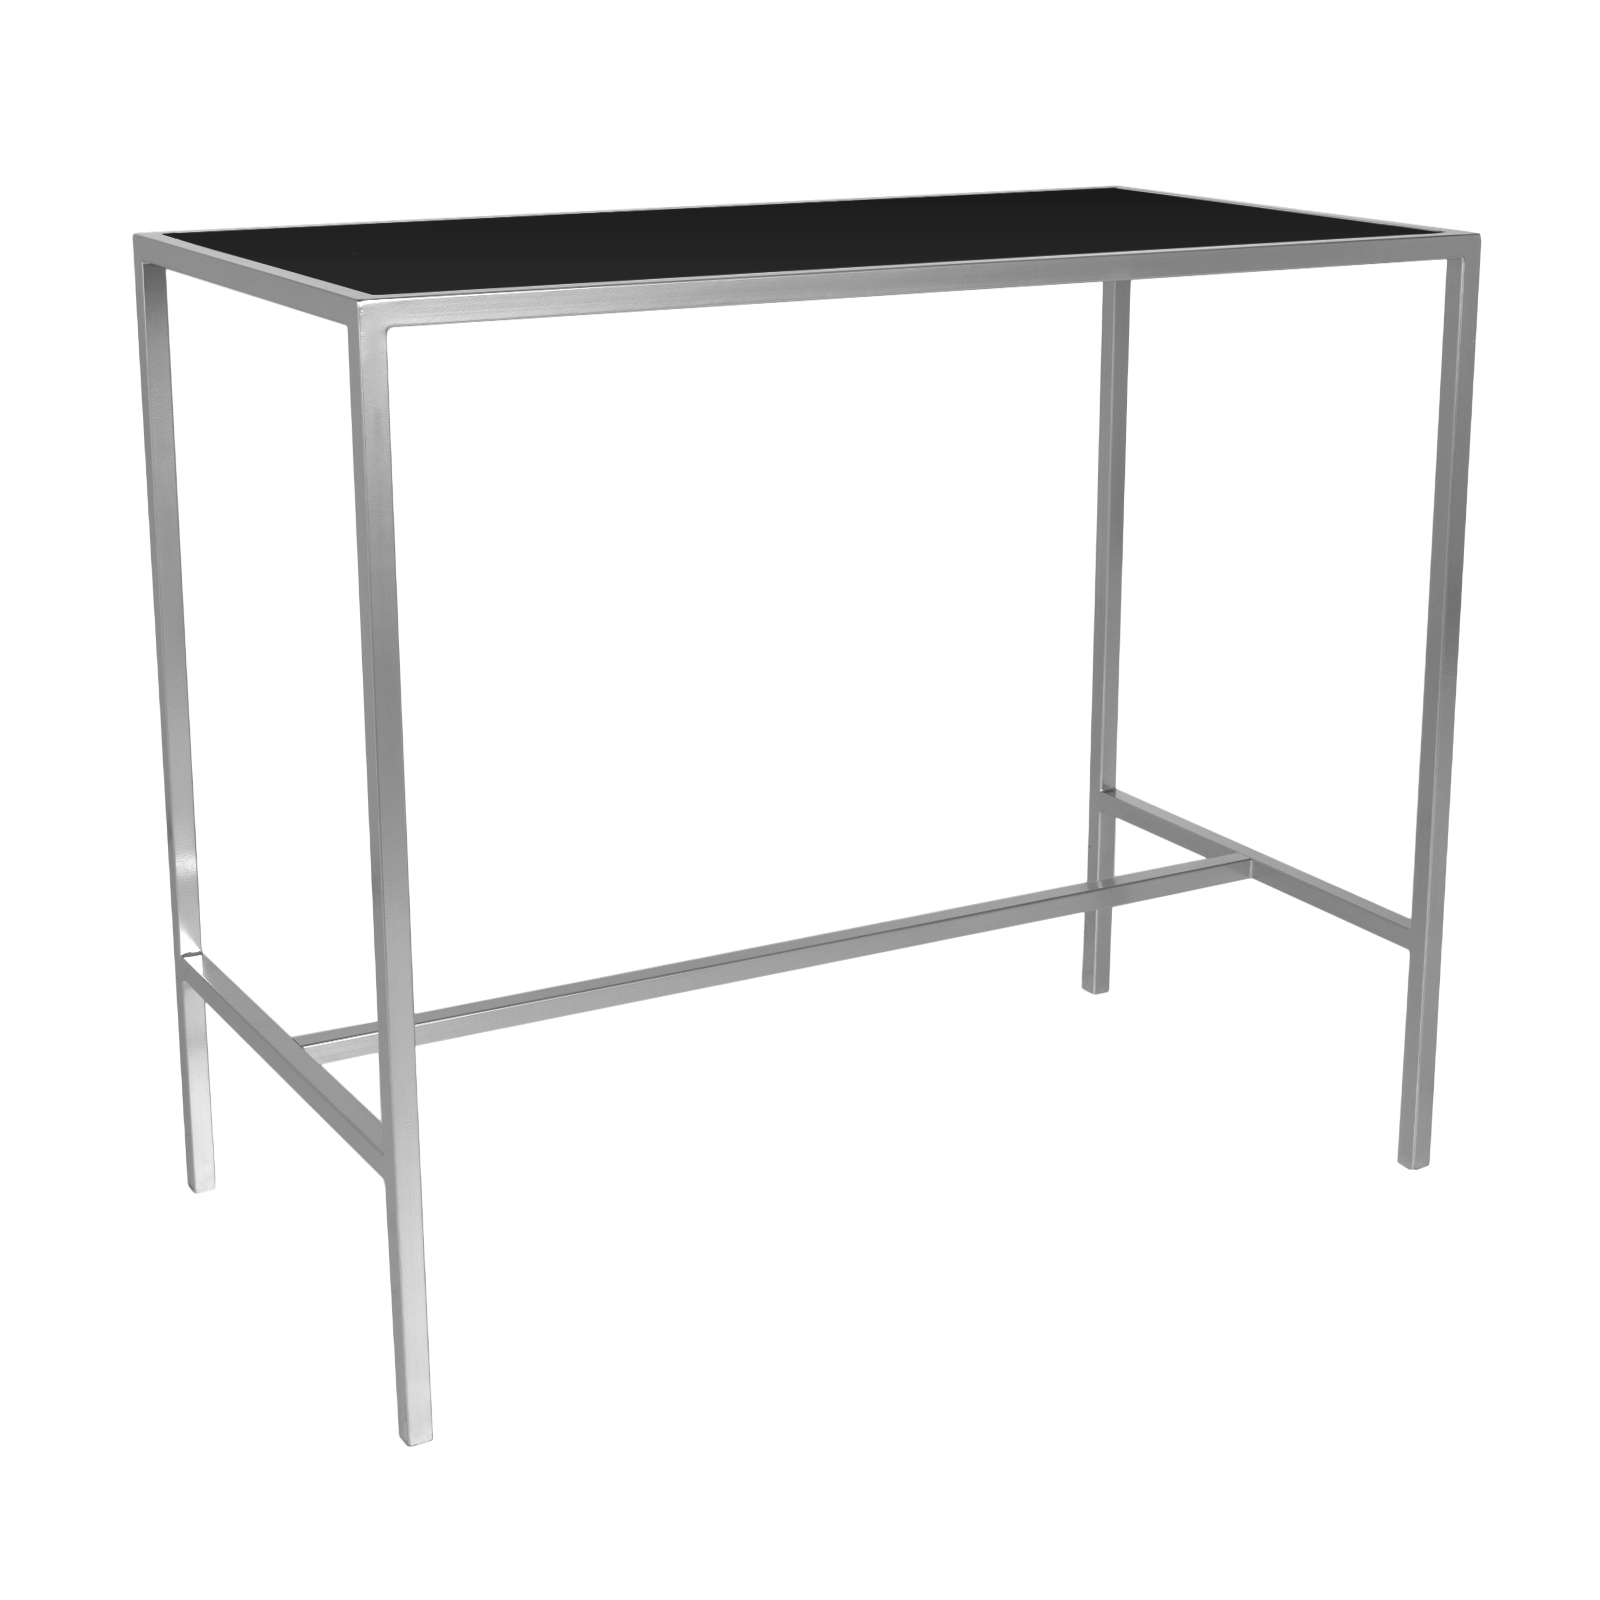 Portable Bar Table Rental Pin By Fontenette On